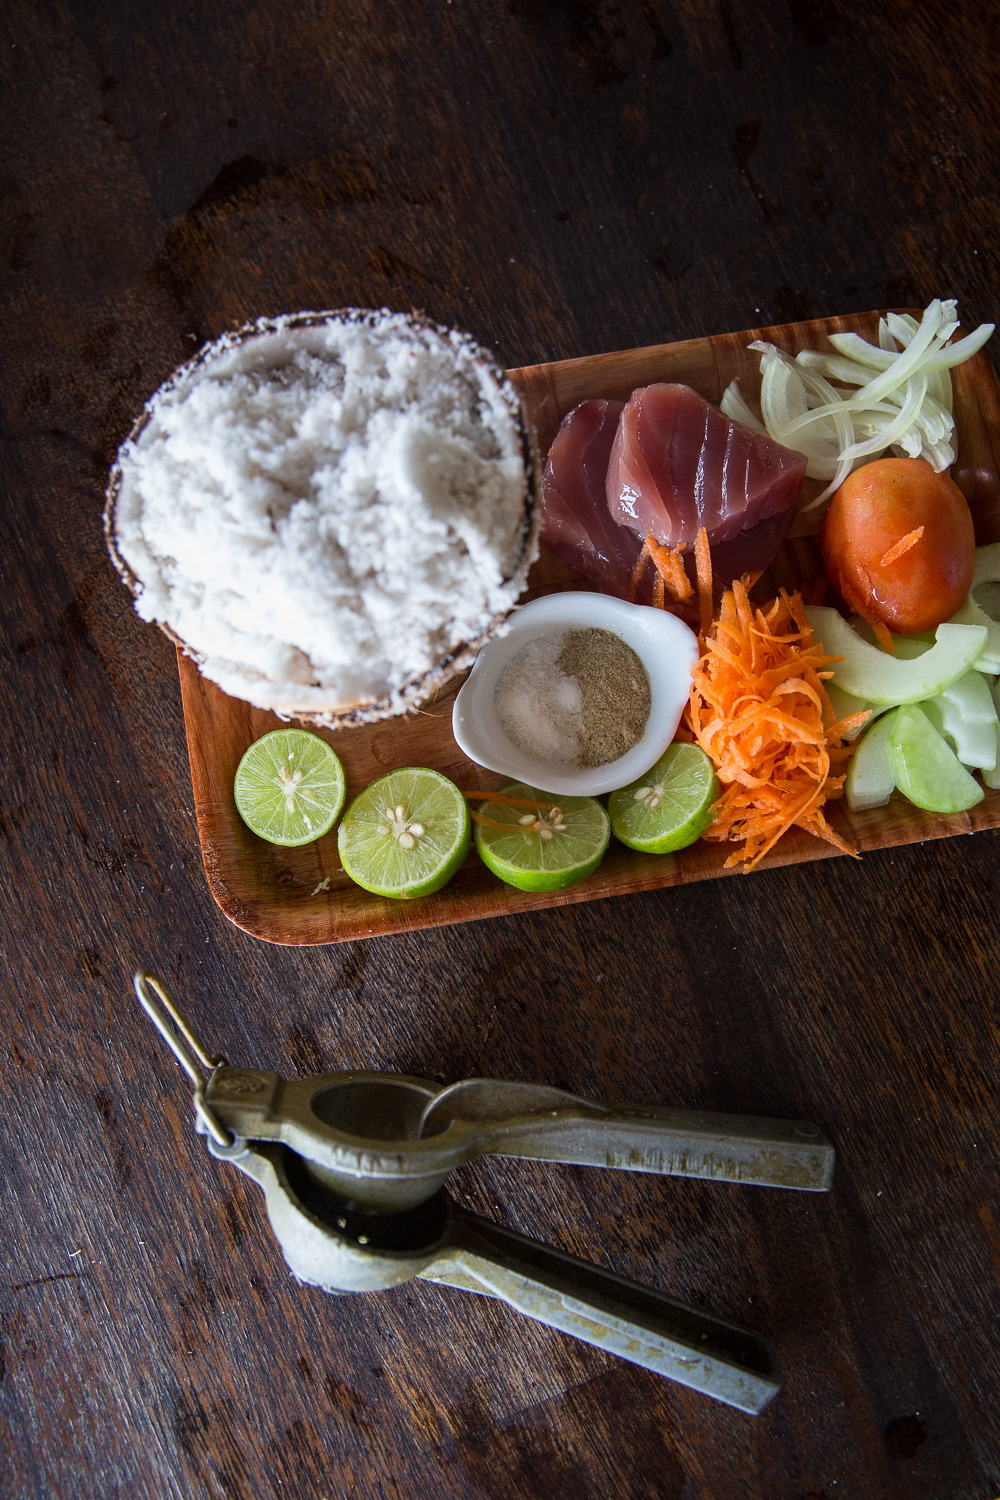 Simple ingredients for poisson cru: fresh coconut, lime, salt, pepper, fresh tuna, carrots, cucumber, onion, tomato